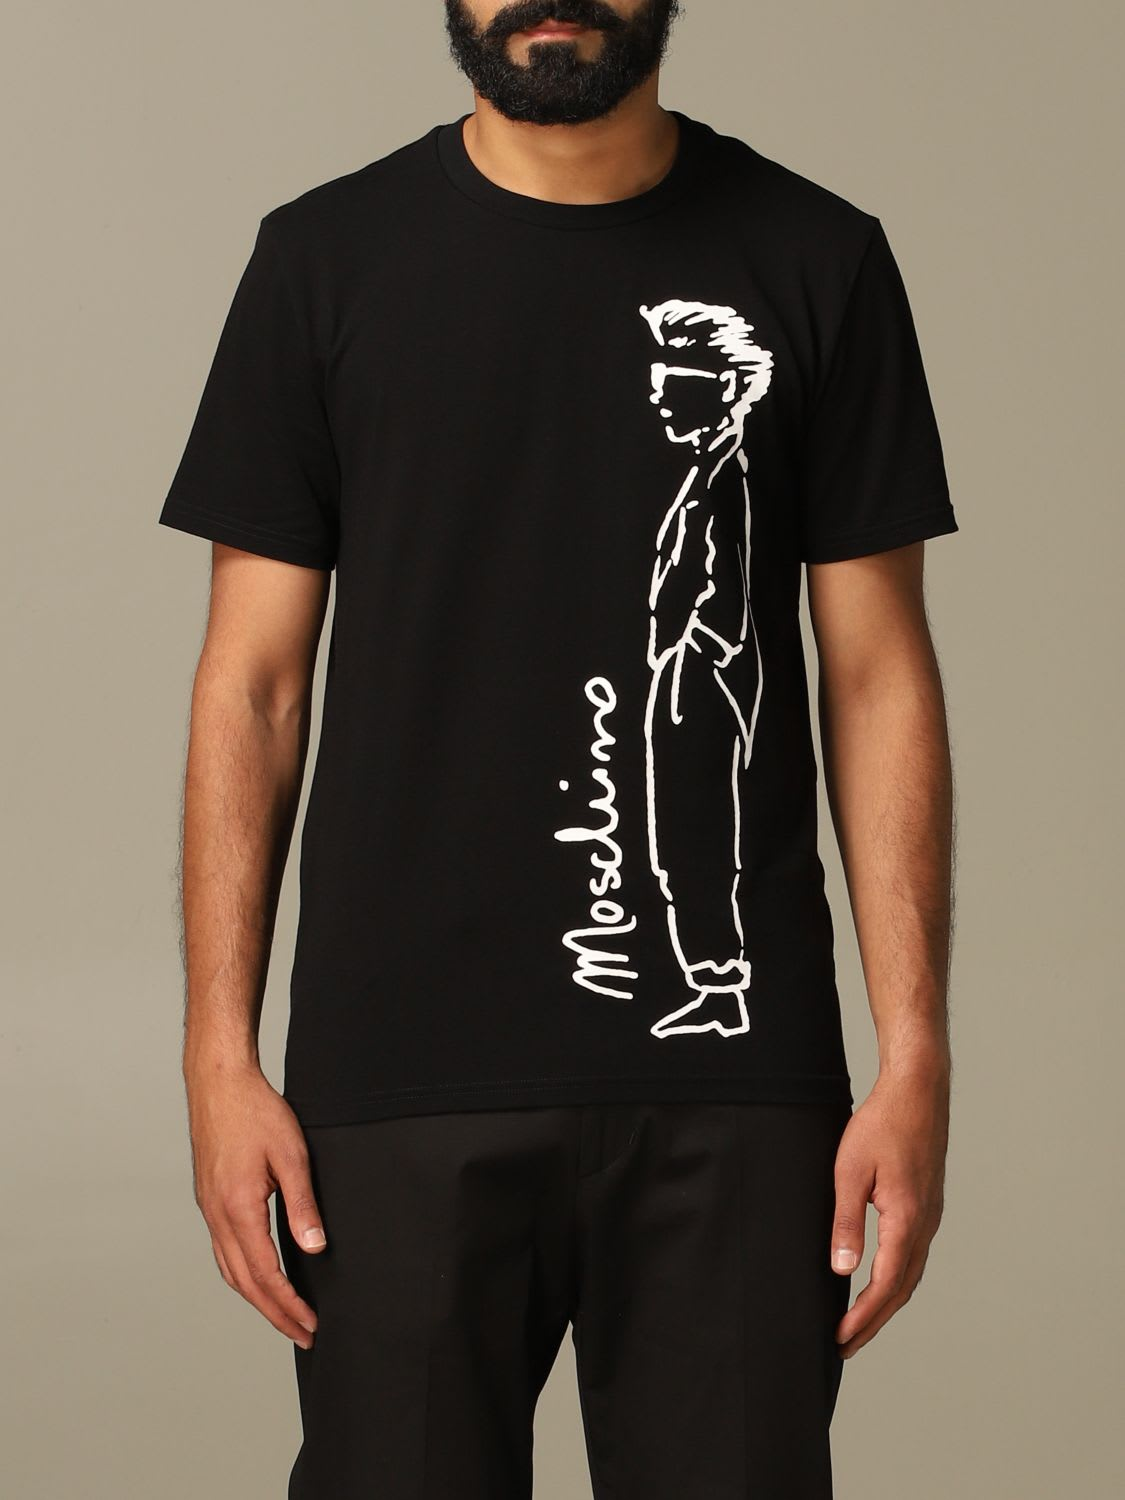 Moschino Couture T-shirt Moschino Couture T-shirt With Moschino Character Logo